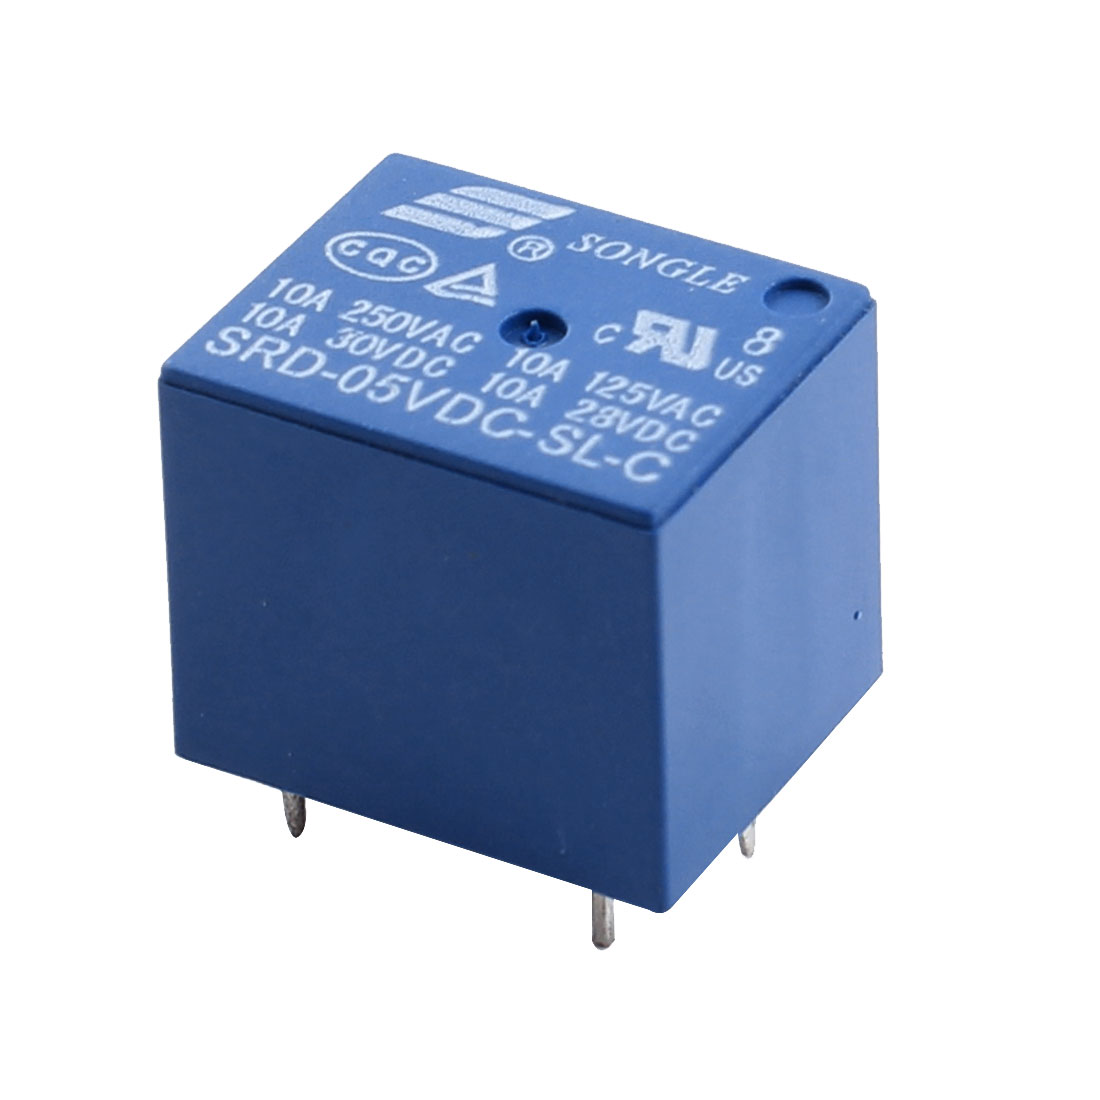 DC5V Coil SPDT 5Pin 1NO 1NC PCB Mounting Blue Plastic Housing General Purpose Power Relay